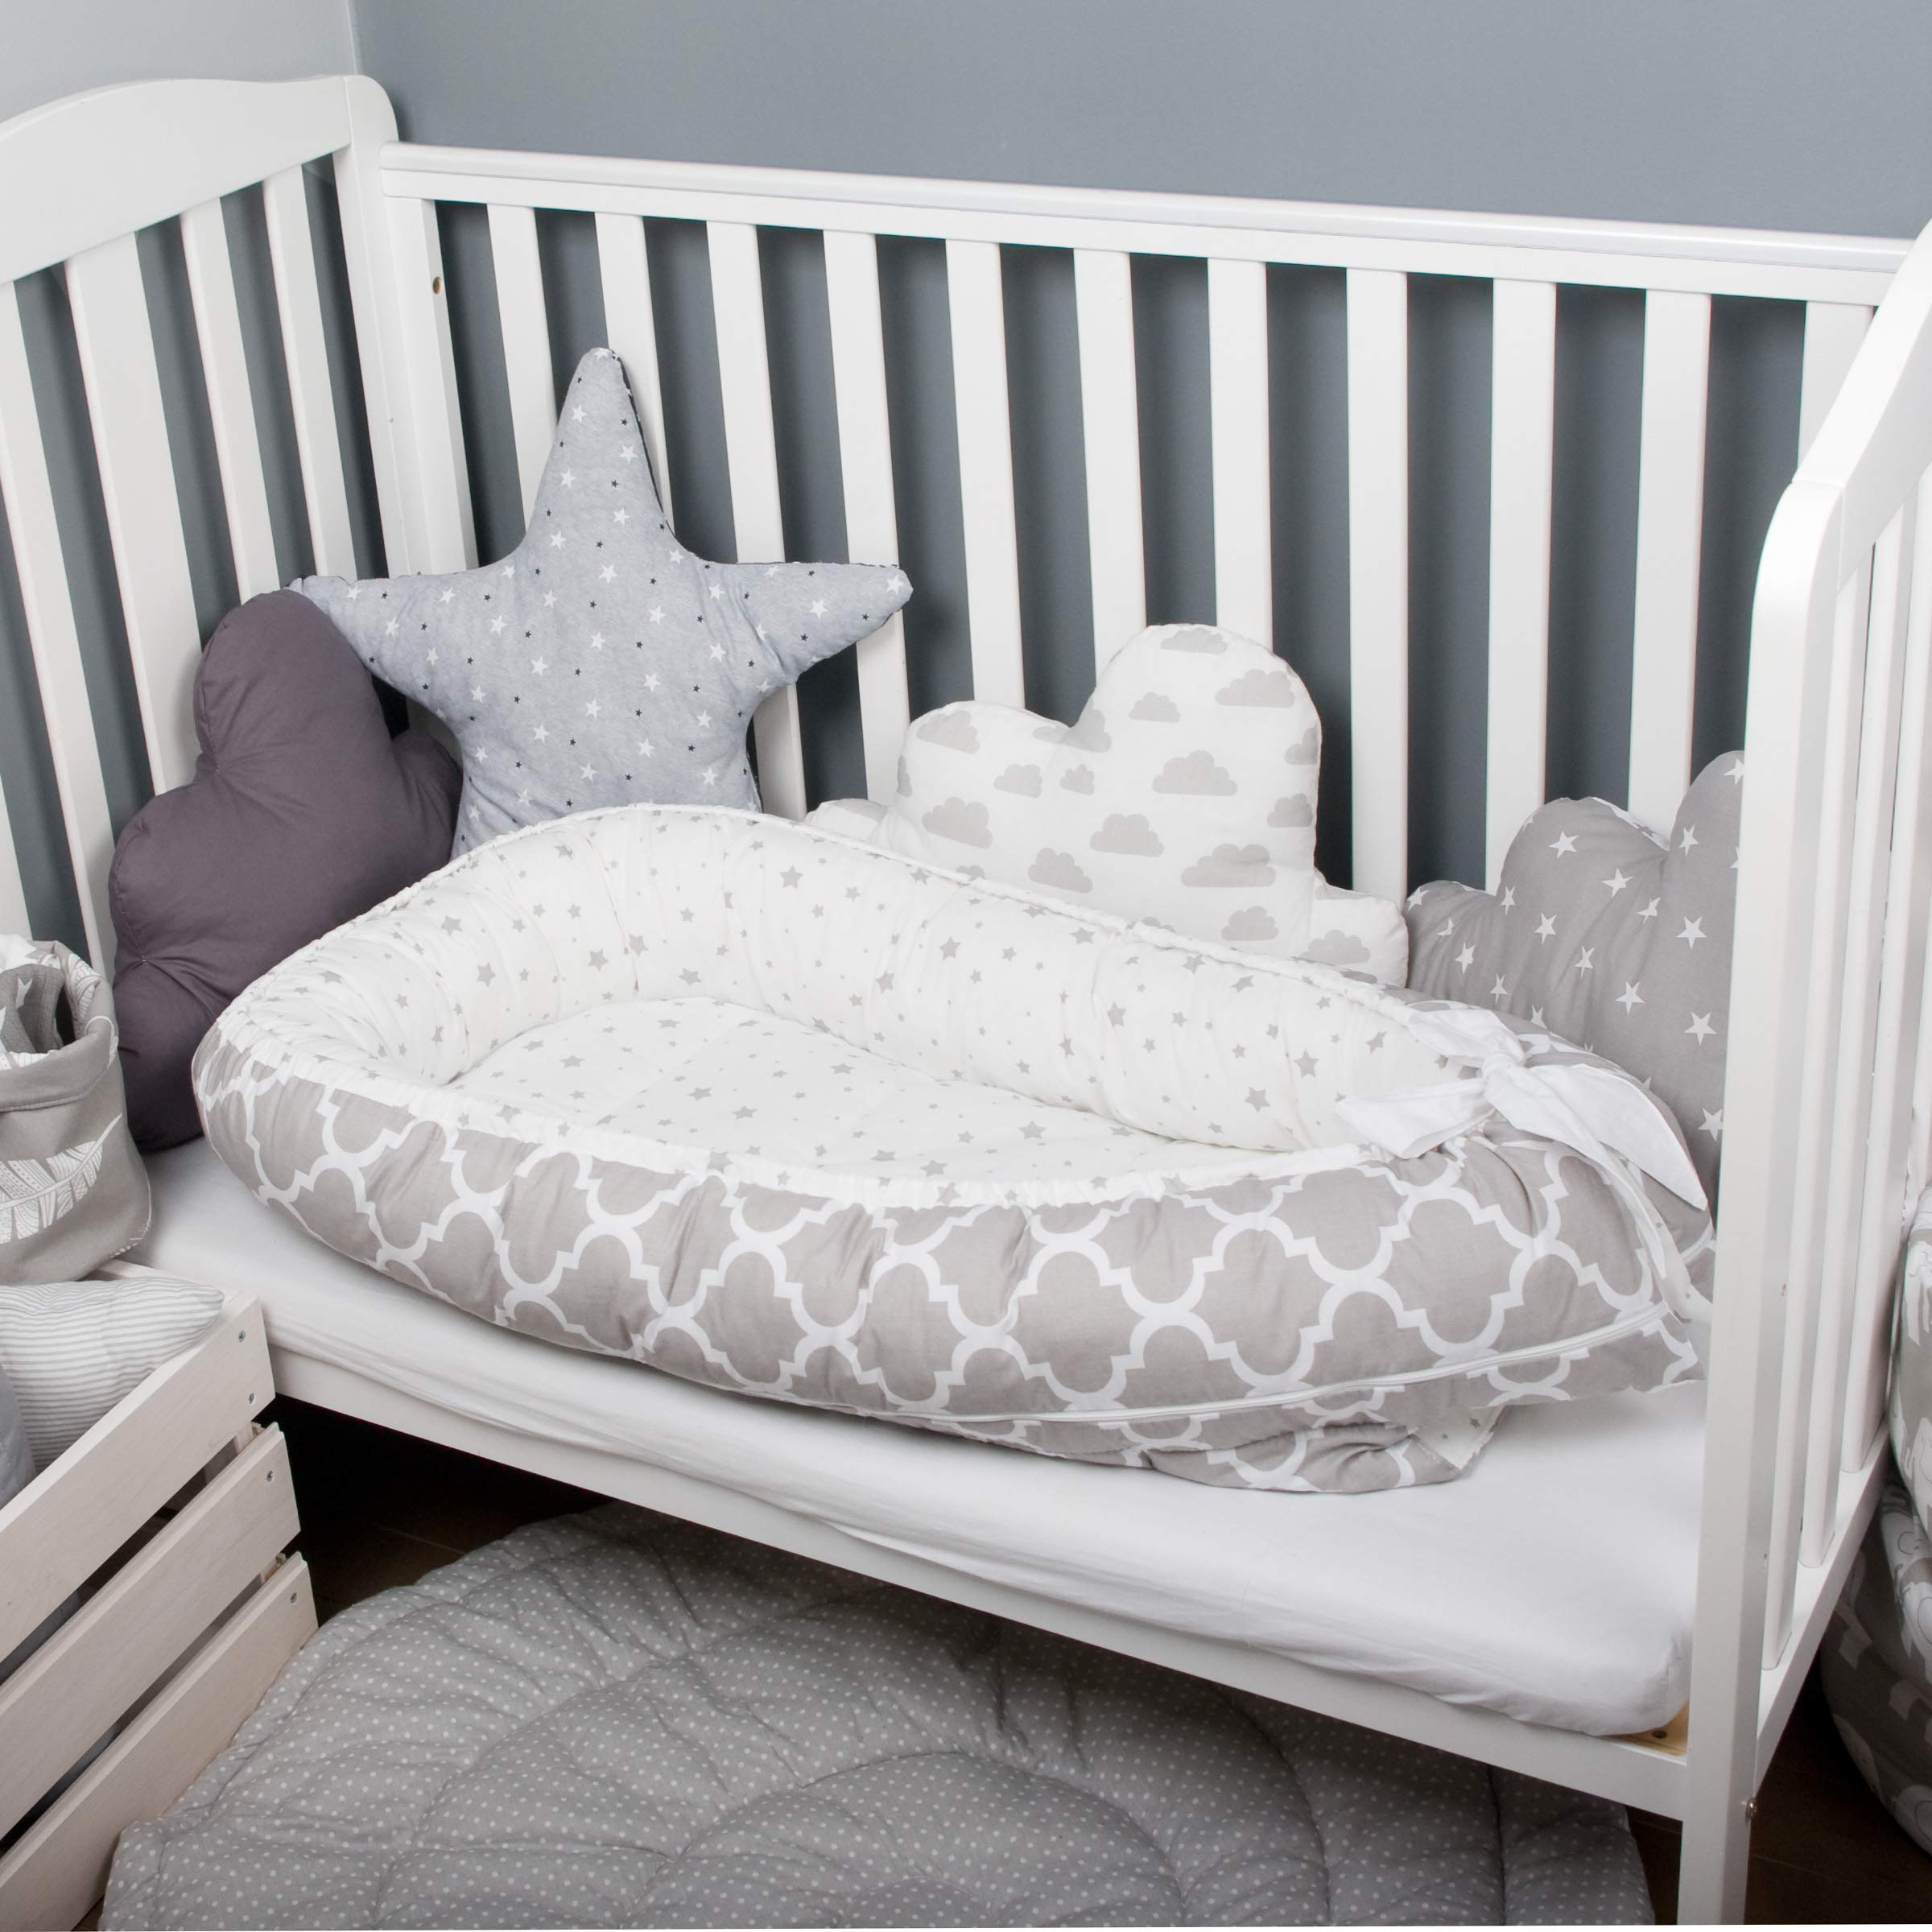 Baby nest bed or toddler size nest, marocco portable crib, co sleeper babynest for newborn and toddlers